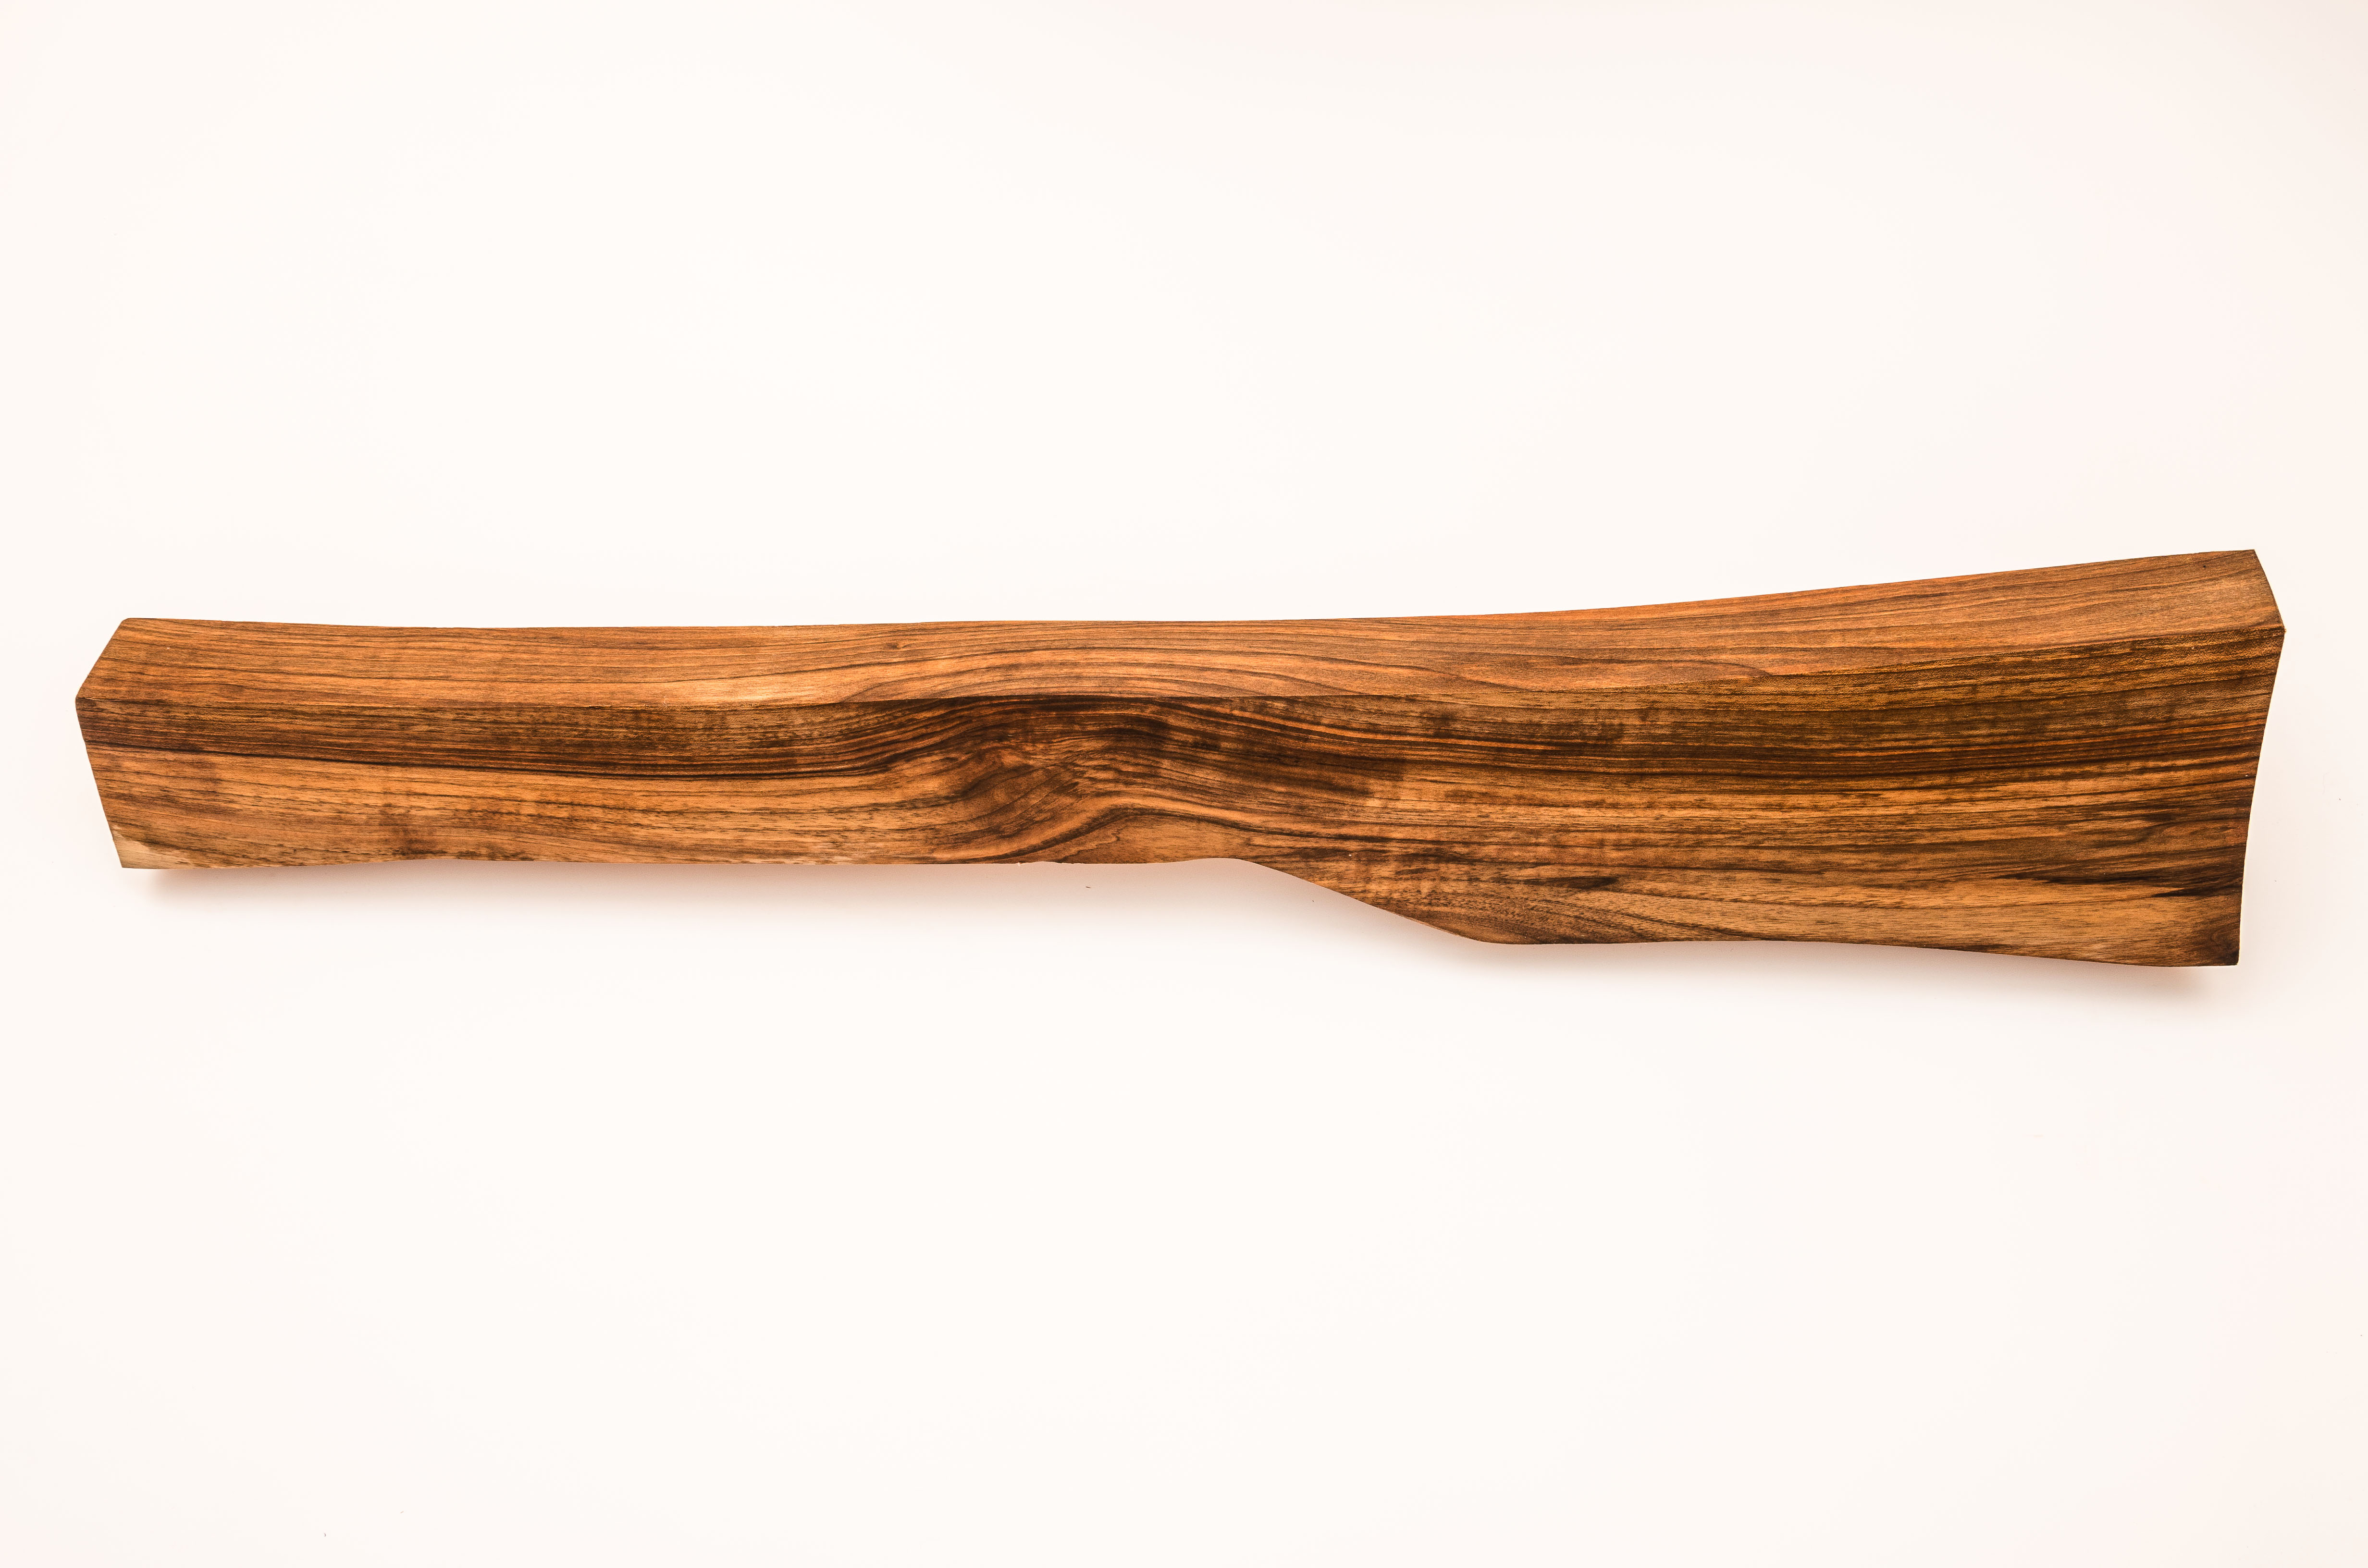 walnut_stock_blanks_for_guns_and_rifles-0893